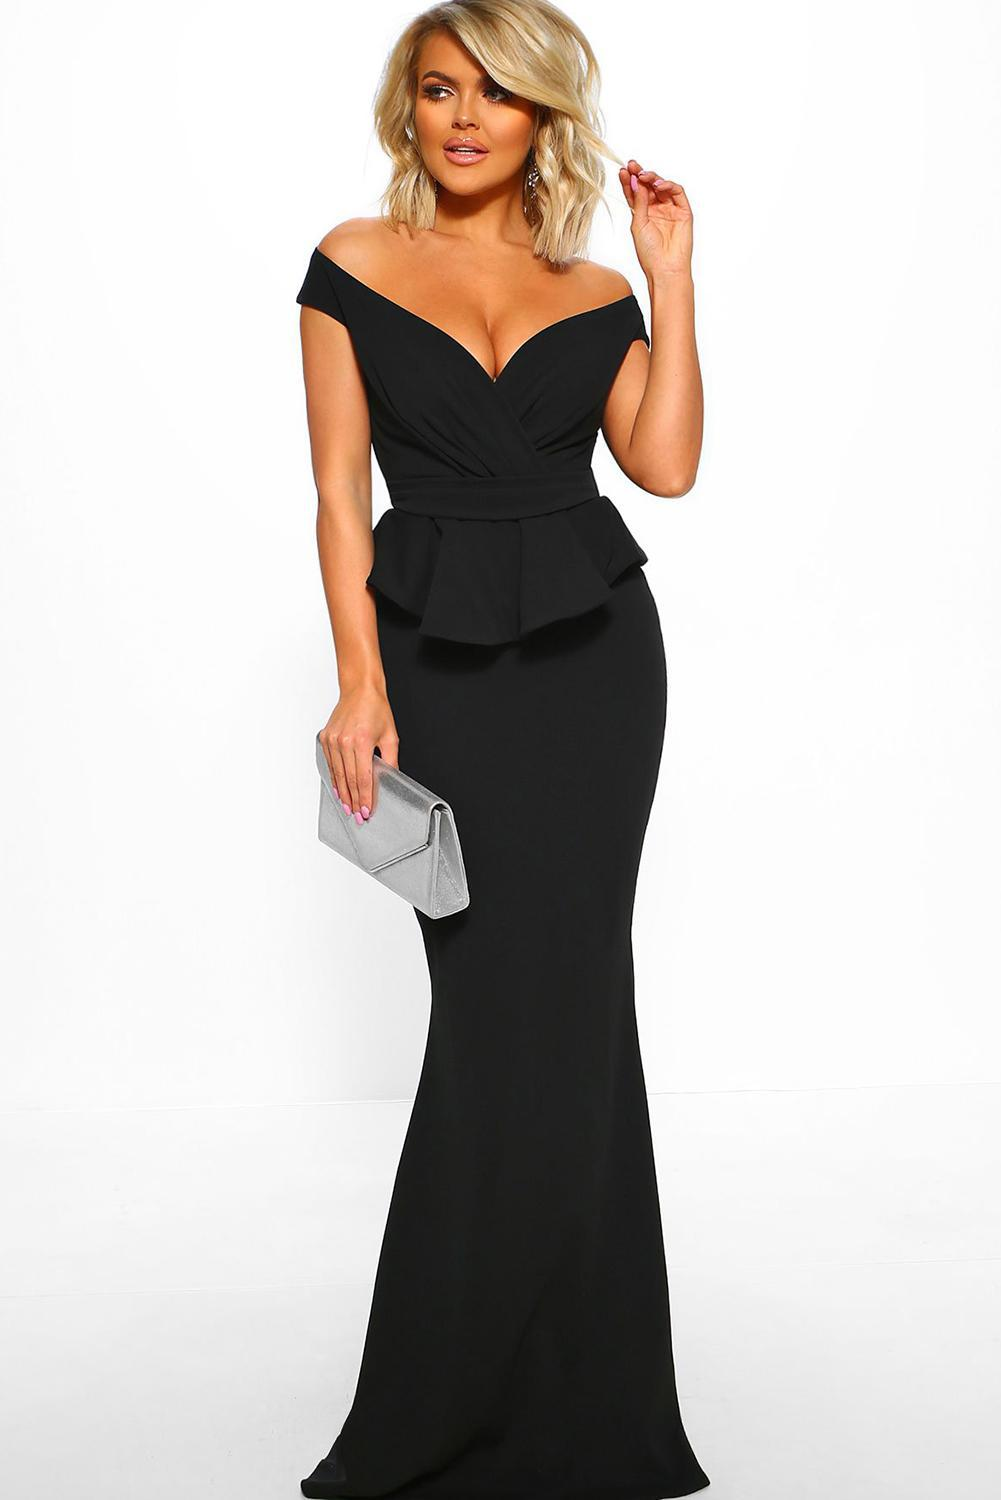 <font><b>Black</b></font> Cross Over Peplum Maxi <font><b>Dress</b></font> <font><b>Women</b></font> <font><b>Sexy</b></font> V Neck Off Shoulder <font><b>Long</b></font> <font><b>Bodycon</b></font> Elegant Party Floor Length <font><b>Dresses</b></font> Plus Size XL image